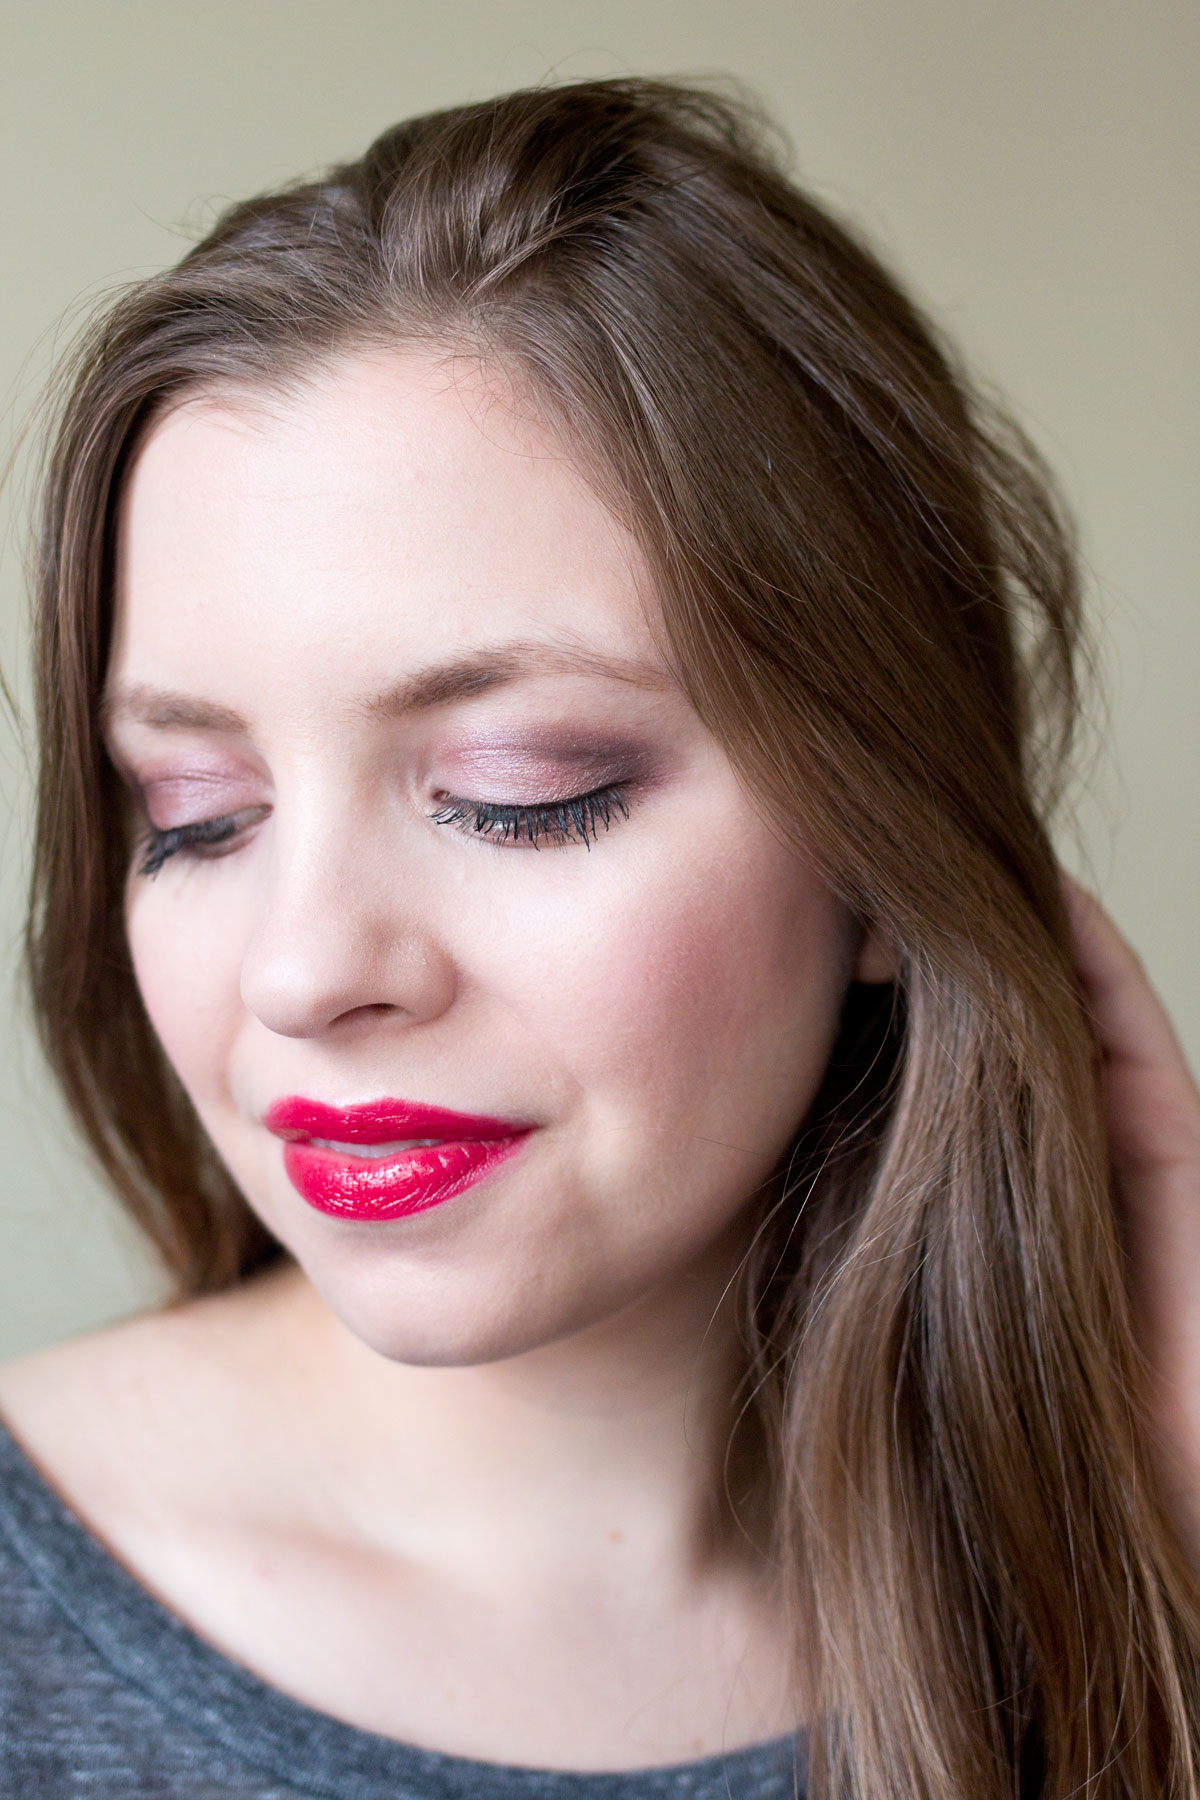 Maybelline Looks to Love // Valentine's Day Date Makeup // Hello Rigby Seattle Beauty Blog